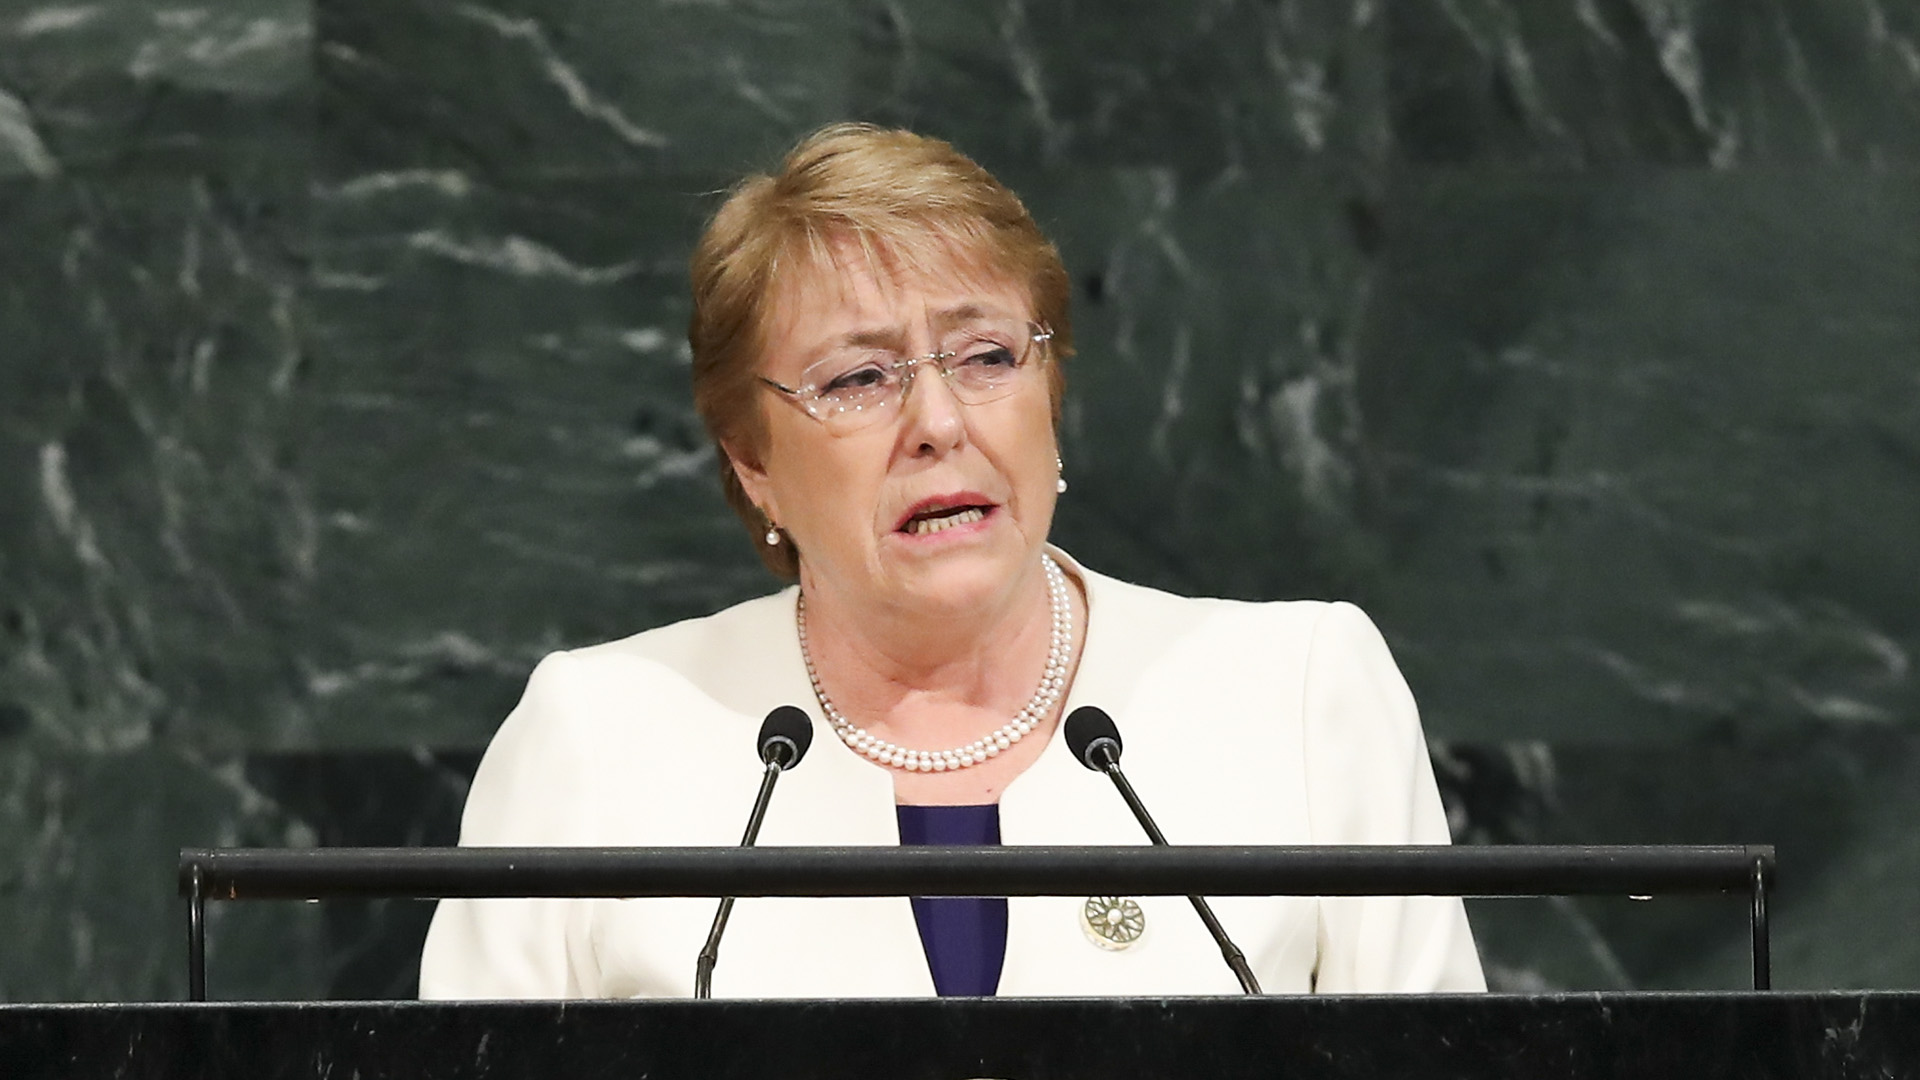 UN Rights Chief Says She Has Credible 'Harrowing' Reports Of Rights Violations By Taliban